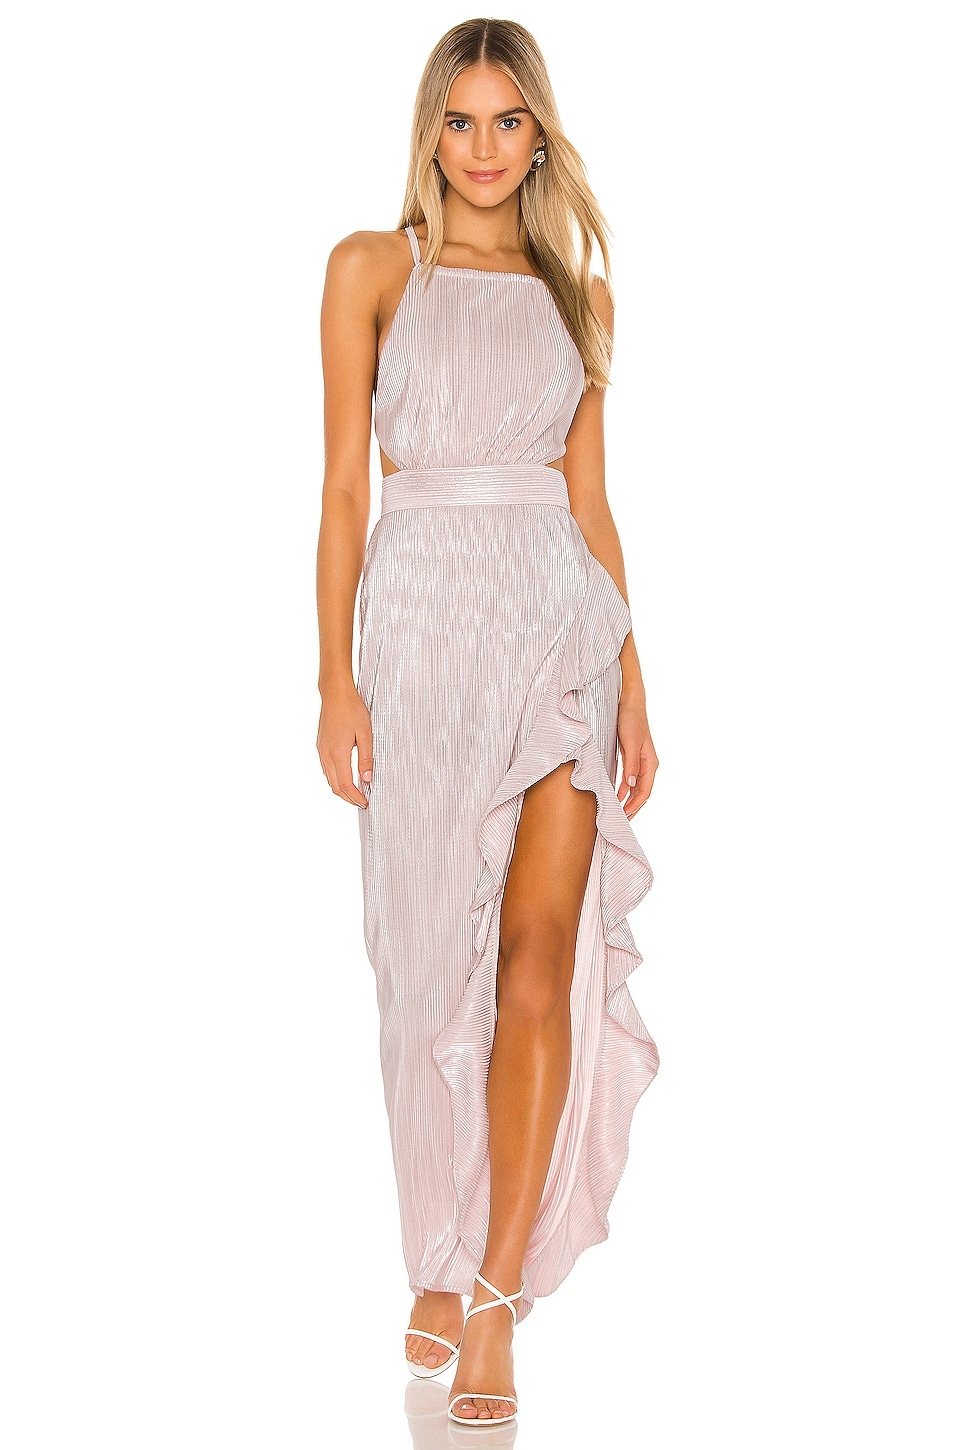 Michael Costello x REVOLVE Henrik Gown in Light Pink